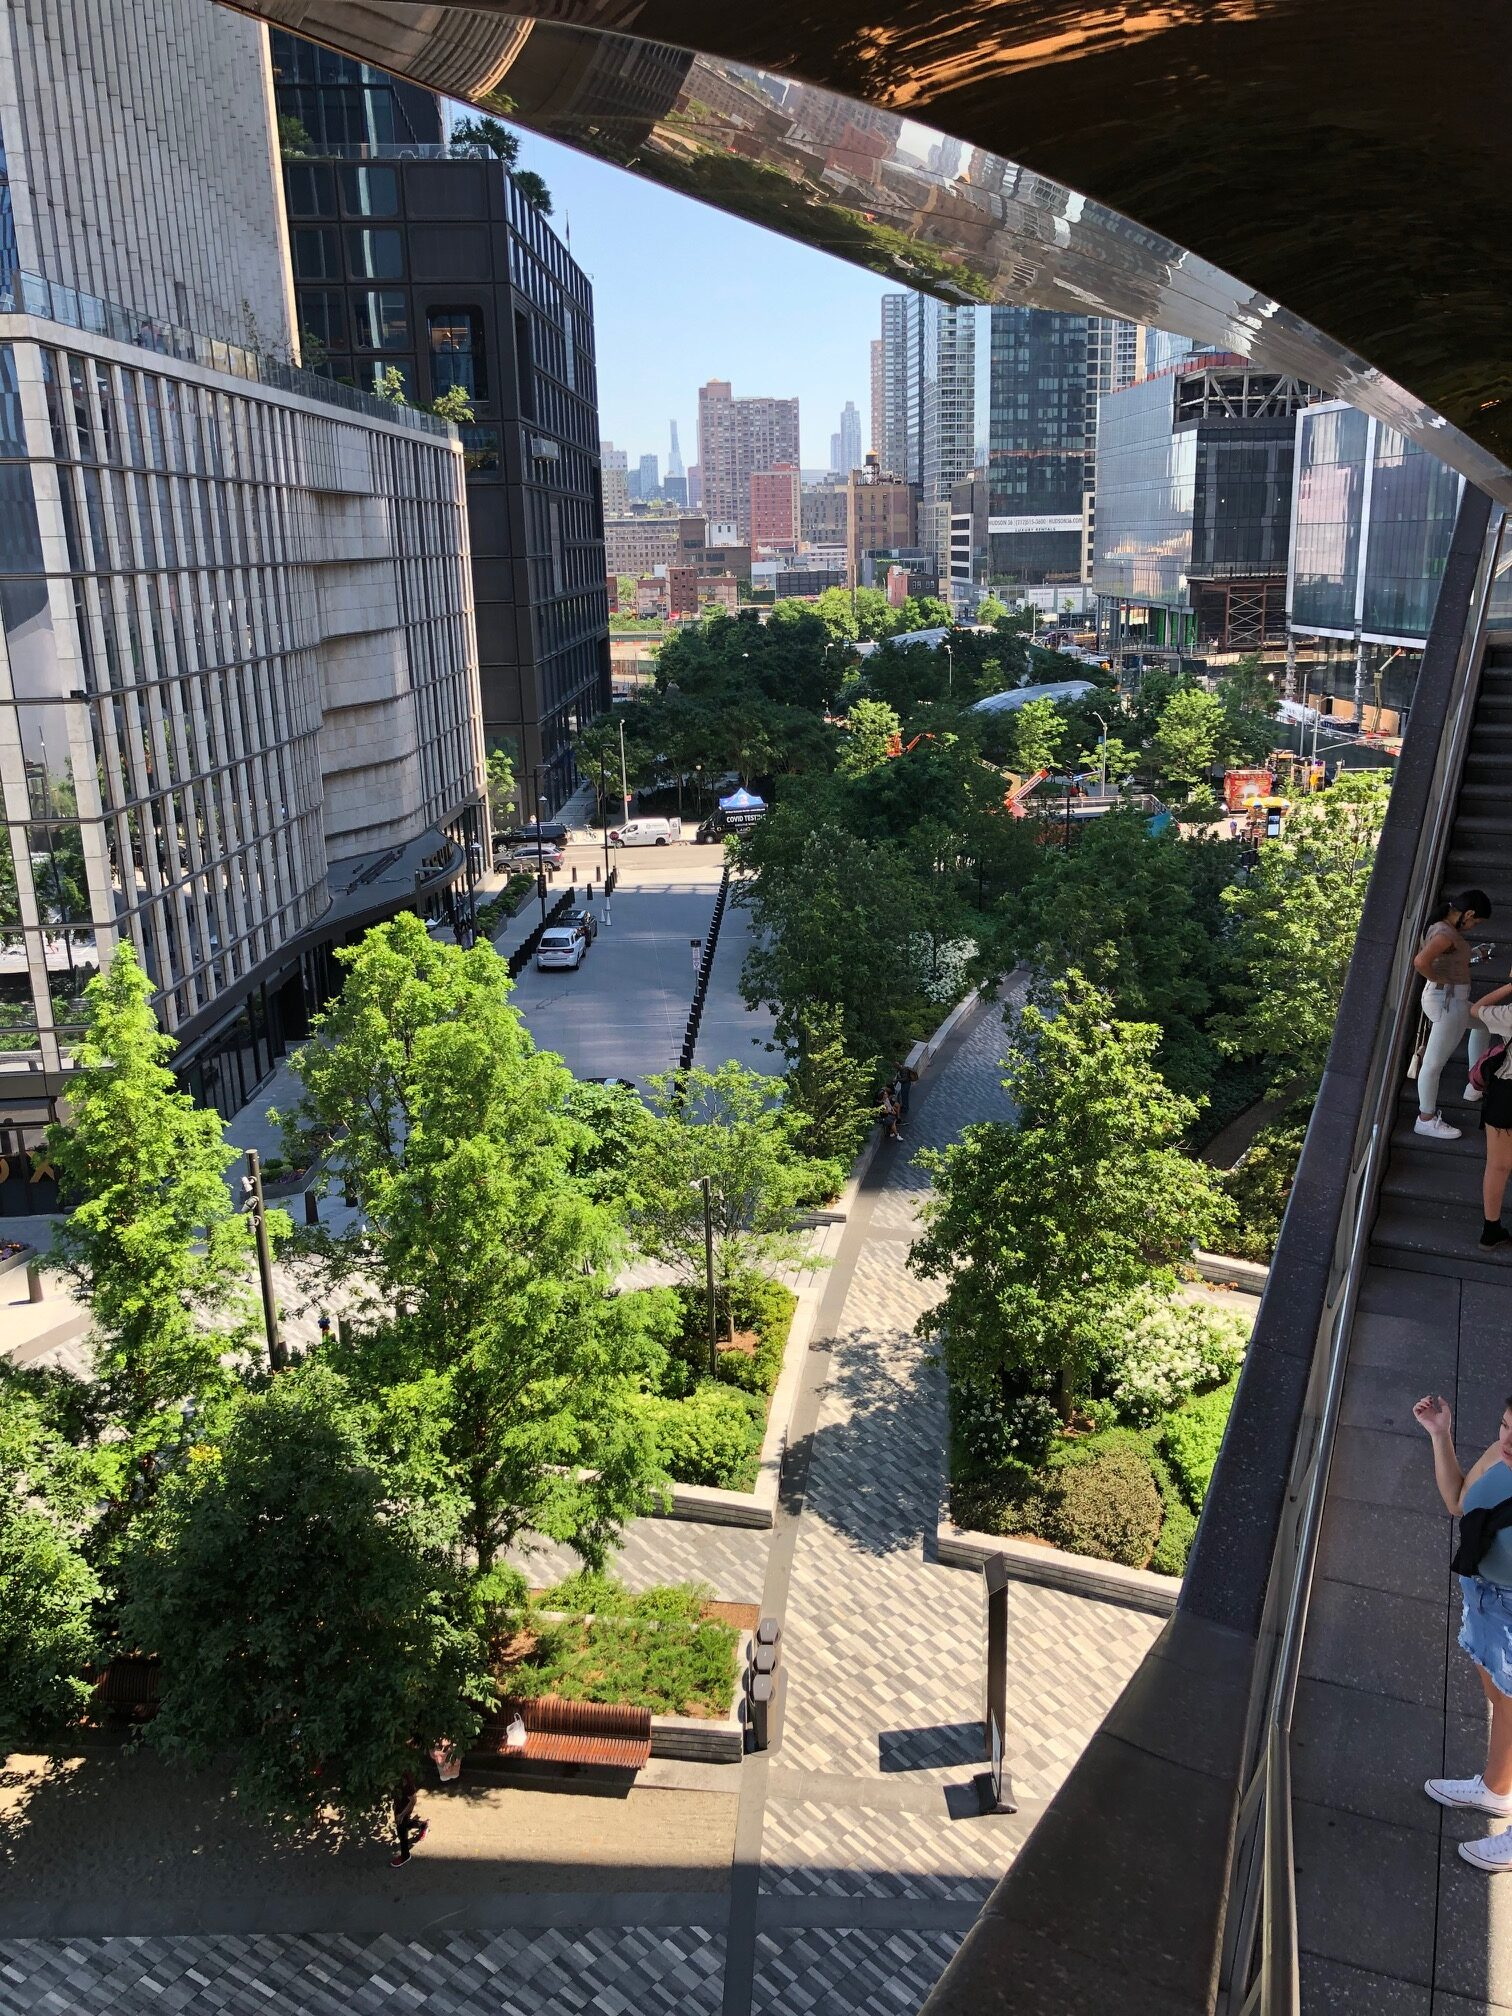 view of Hudson Yards gardens from above